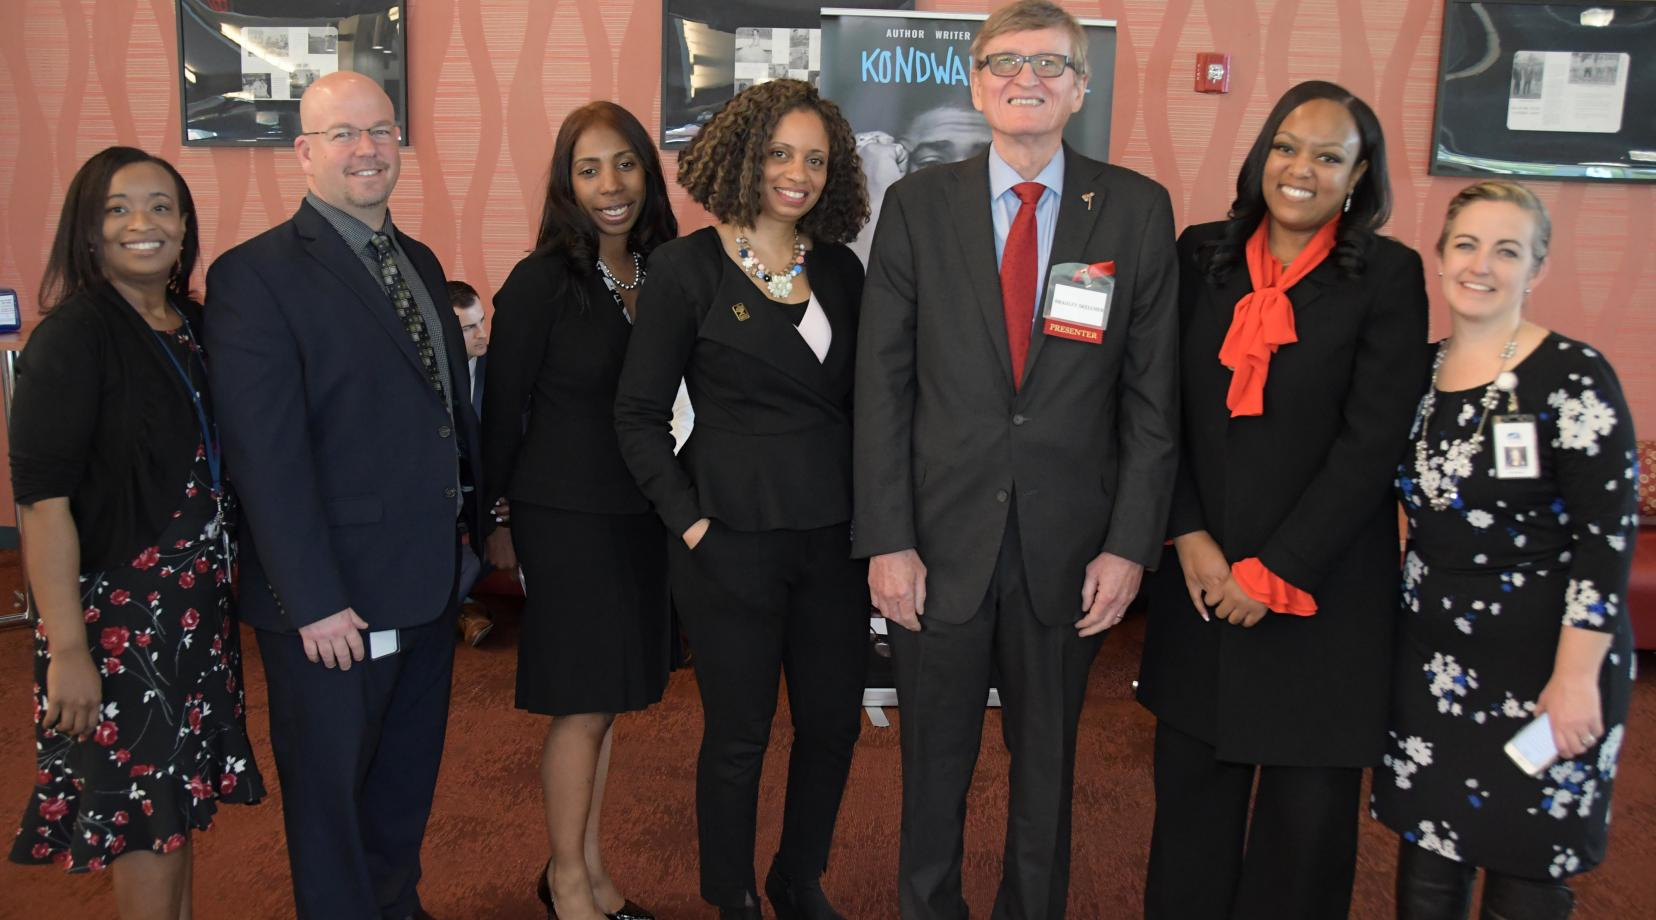 DOE's Tiffany Cireen Jon Nembauer, Raushawn, Shelly Rouser, retired University Associate Provost Bradley Skelcher and Education Department Chair Shelley Rouser, DOE's Monique Martin and Shannon Holston gather for a photo during the summit.